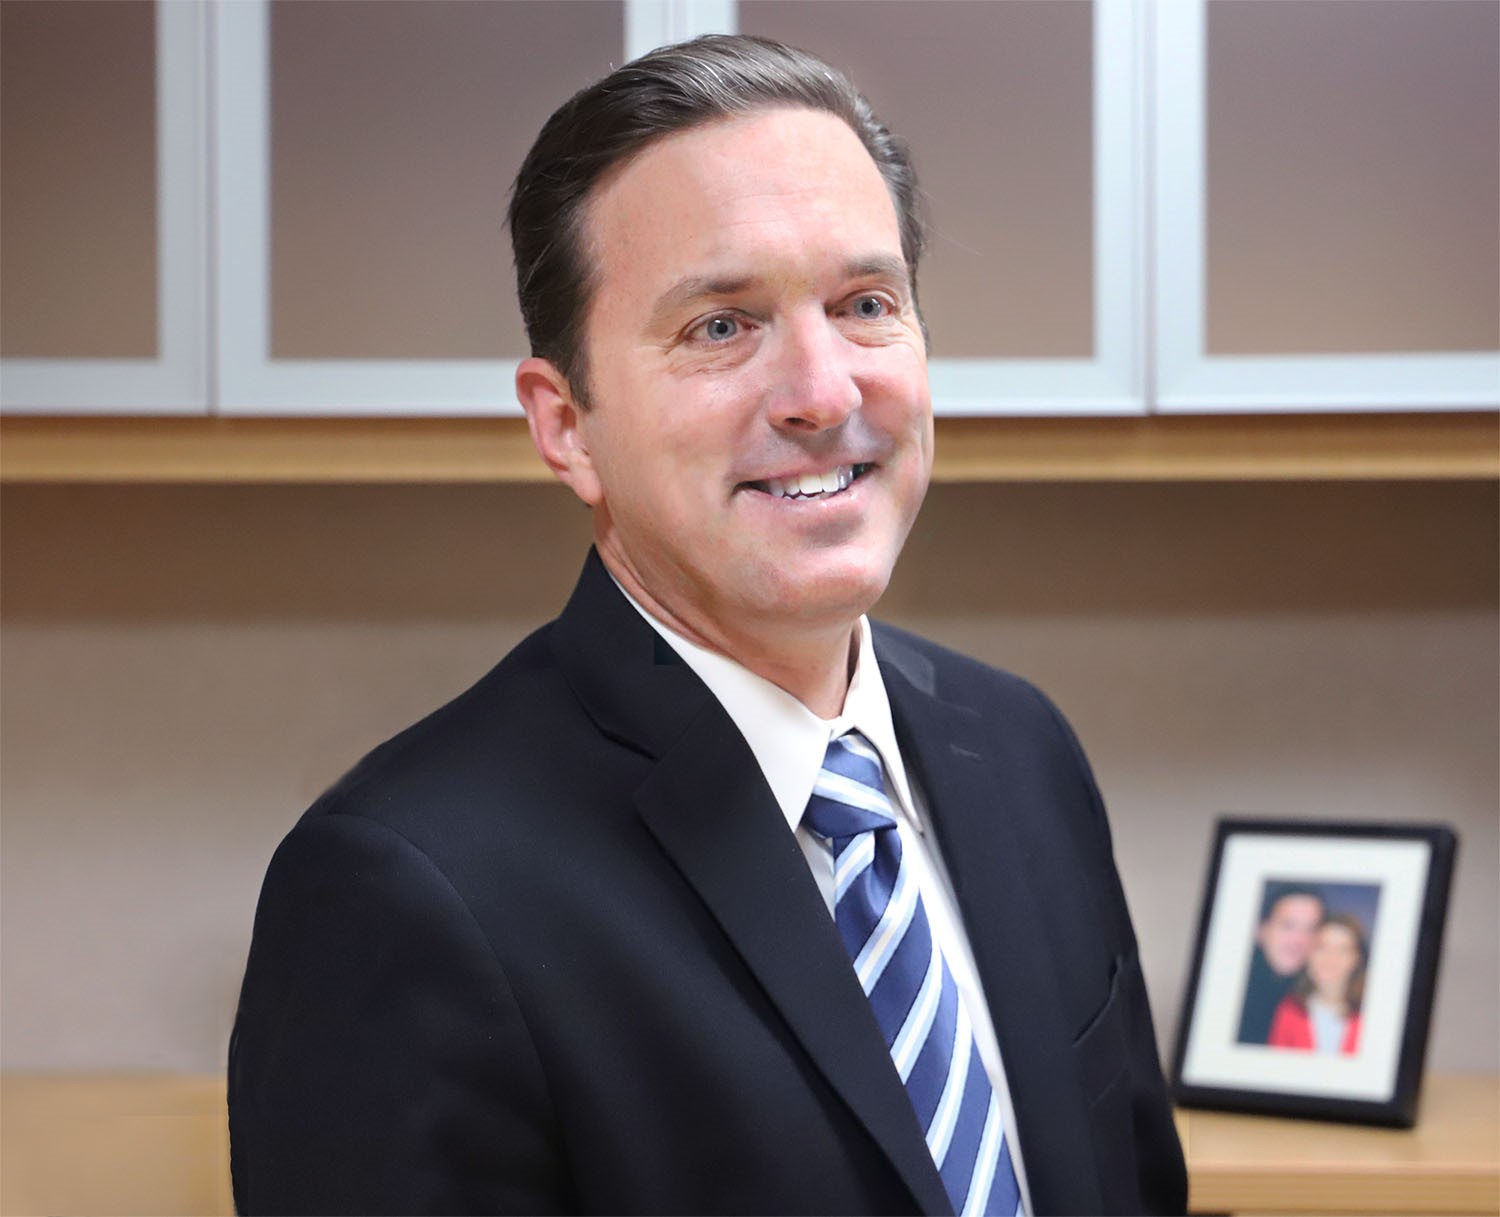 Announcing Jeffrey D. Potts Ed.D. as Head of Cypress Christian School